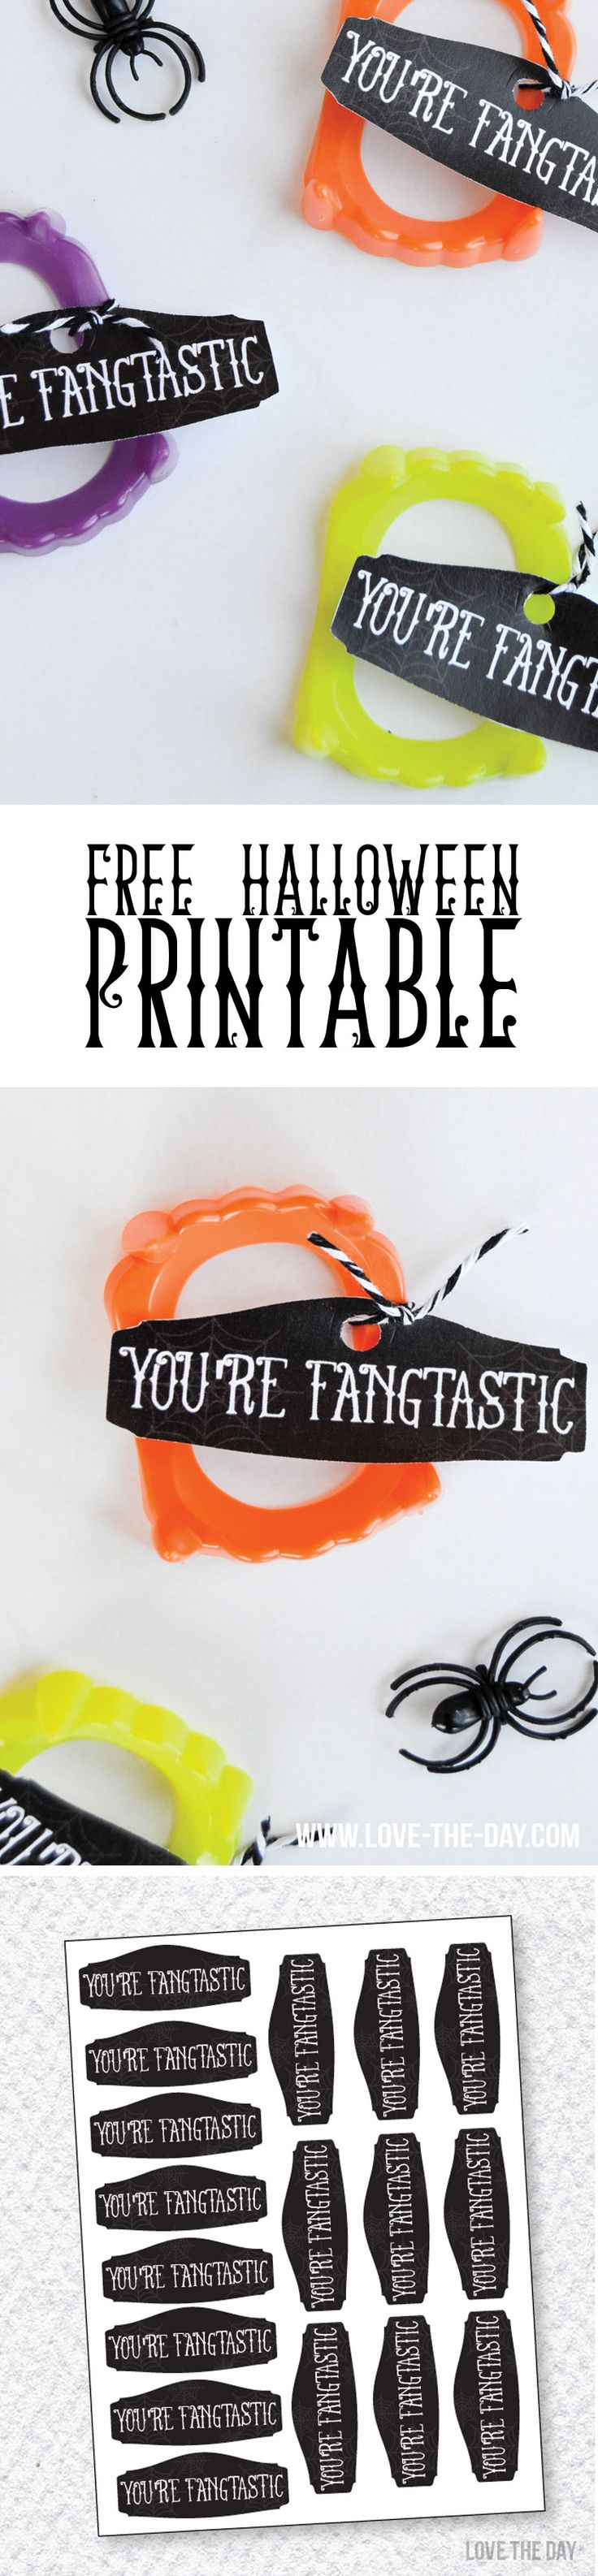 FANGTASTIC HALLOWEEN IDEA & FREE PRINTABLE by Lindi Haws of Love The Day